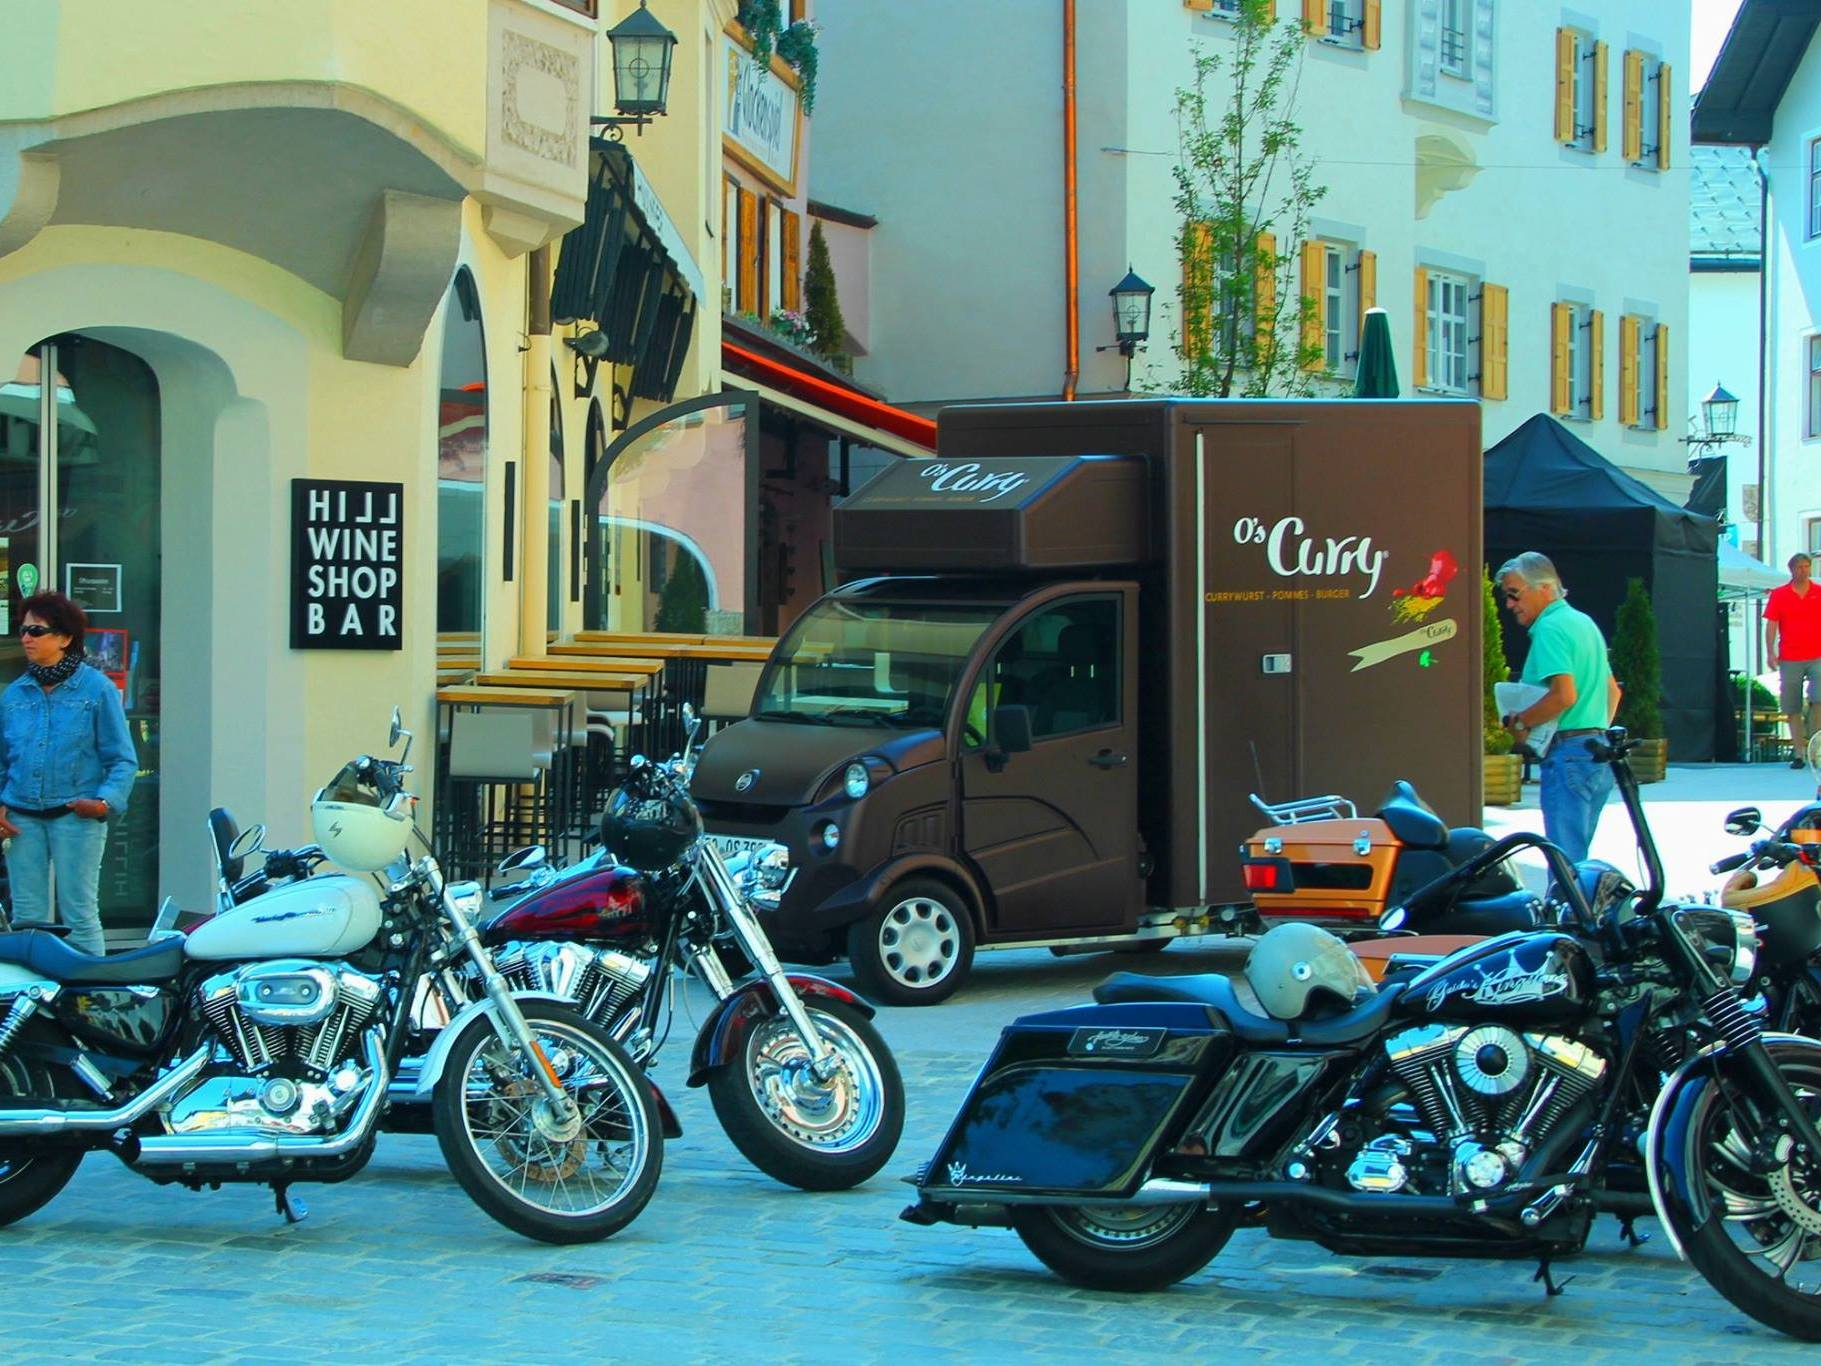 os-curry-und-harley-davidson-in-kitzbuehel